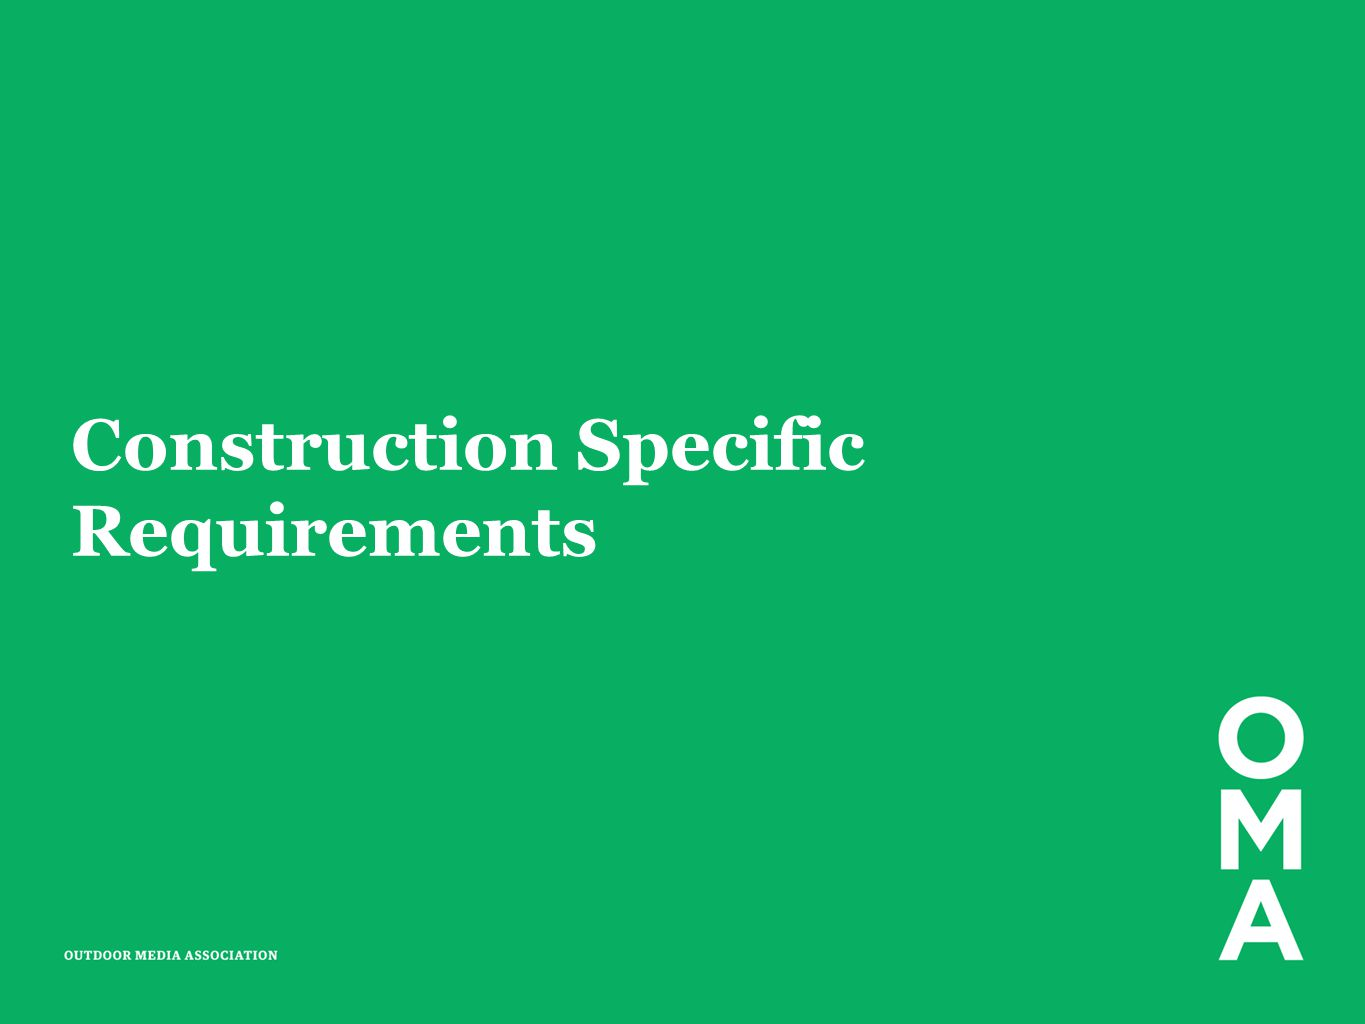 Construction Specific Requirements